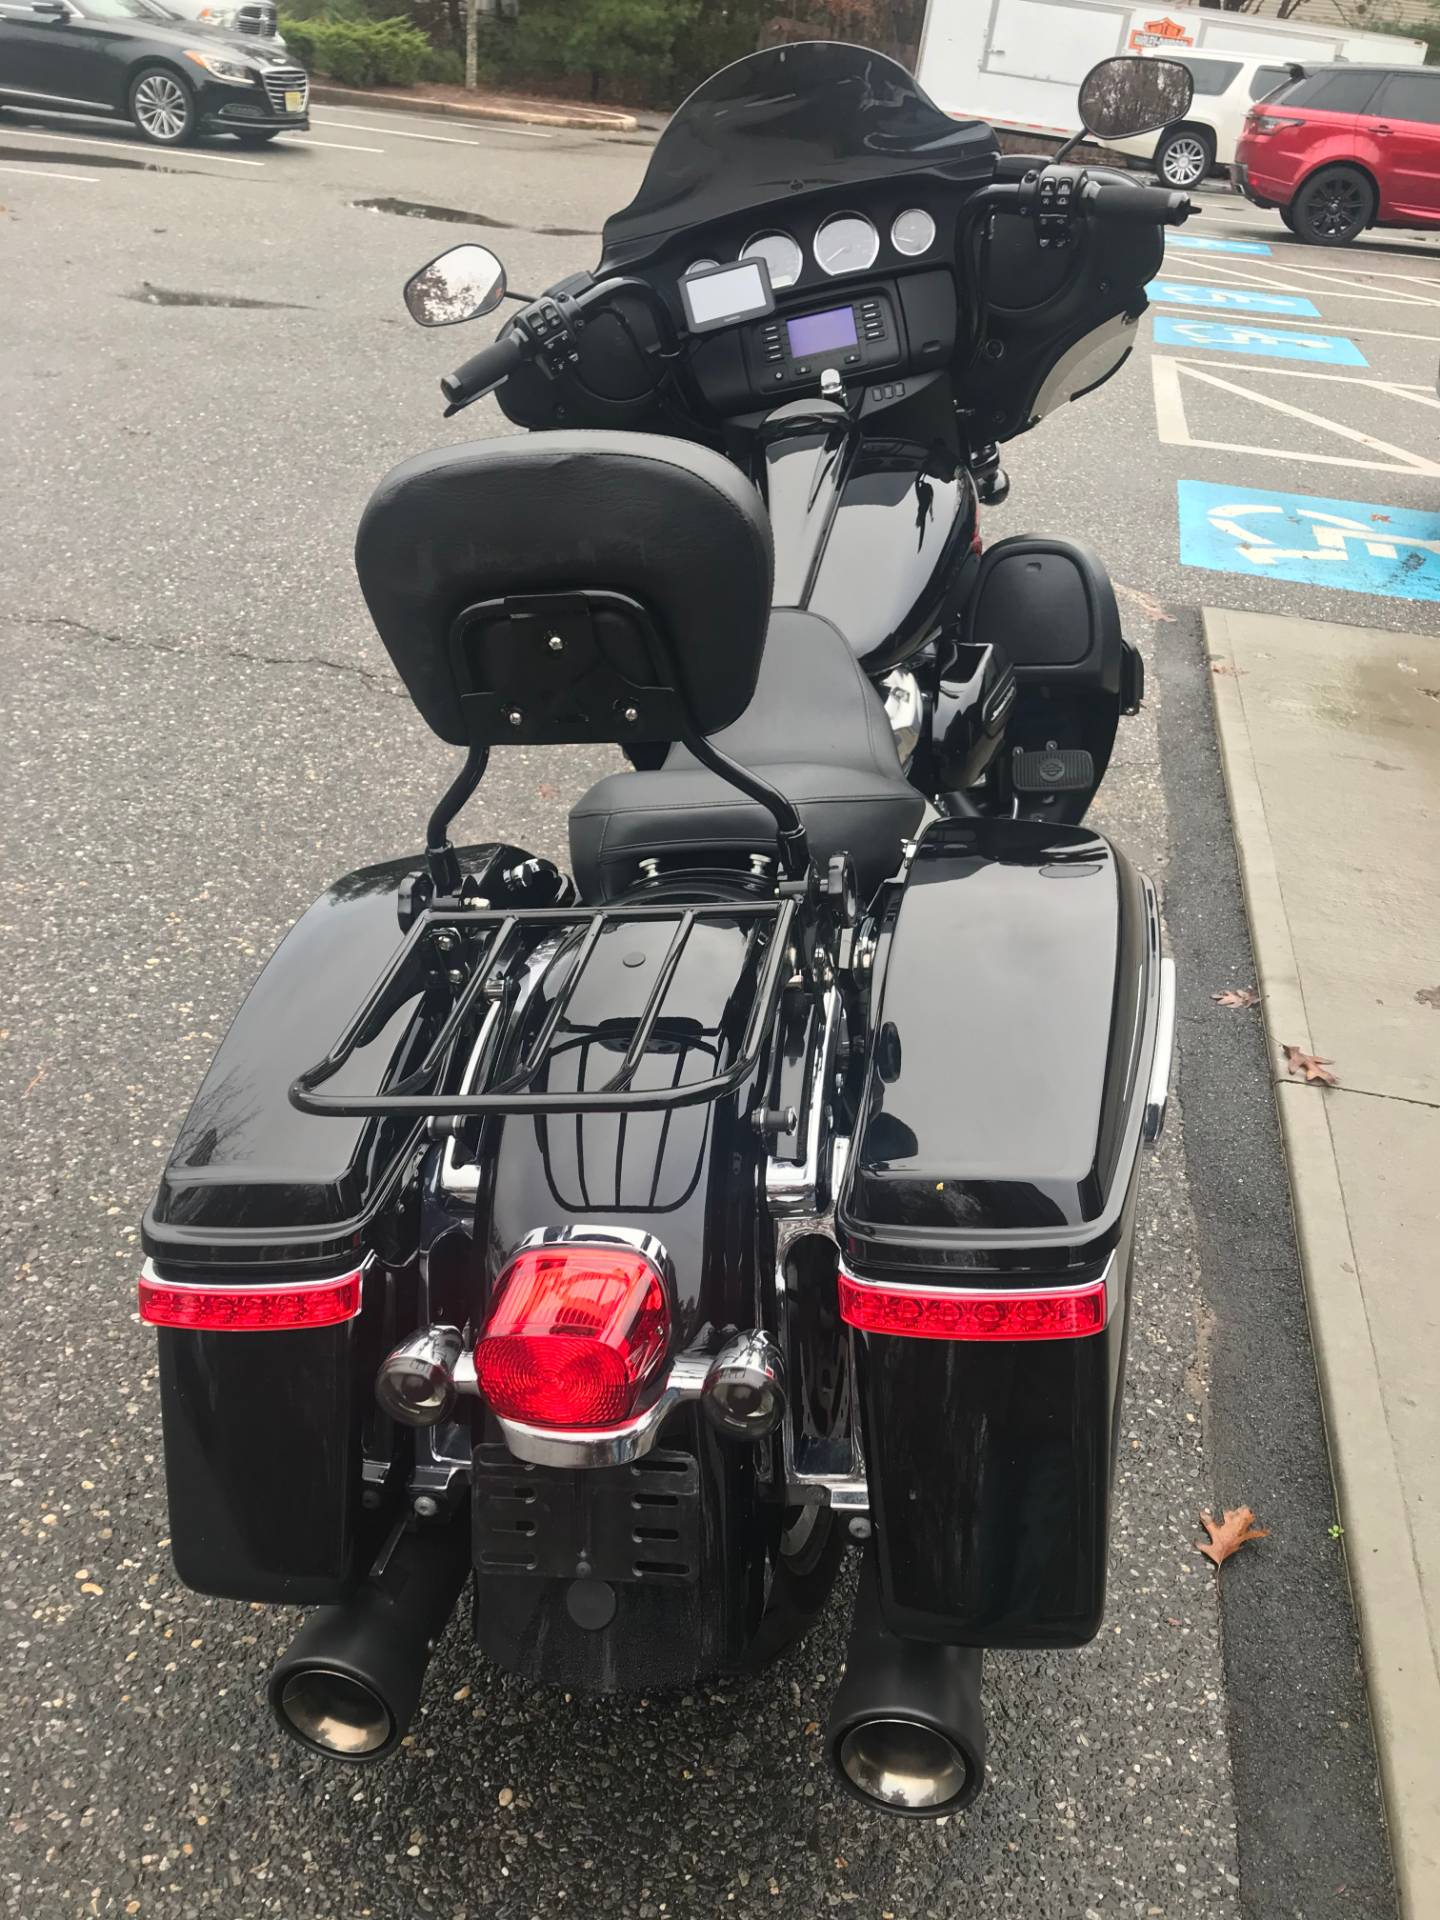 2019 Harley-Davidson ELECTRA GLIDE STANDARD in Lakewood, New Jersey - Photo 4